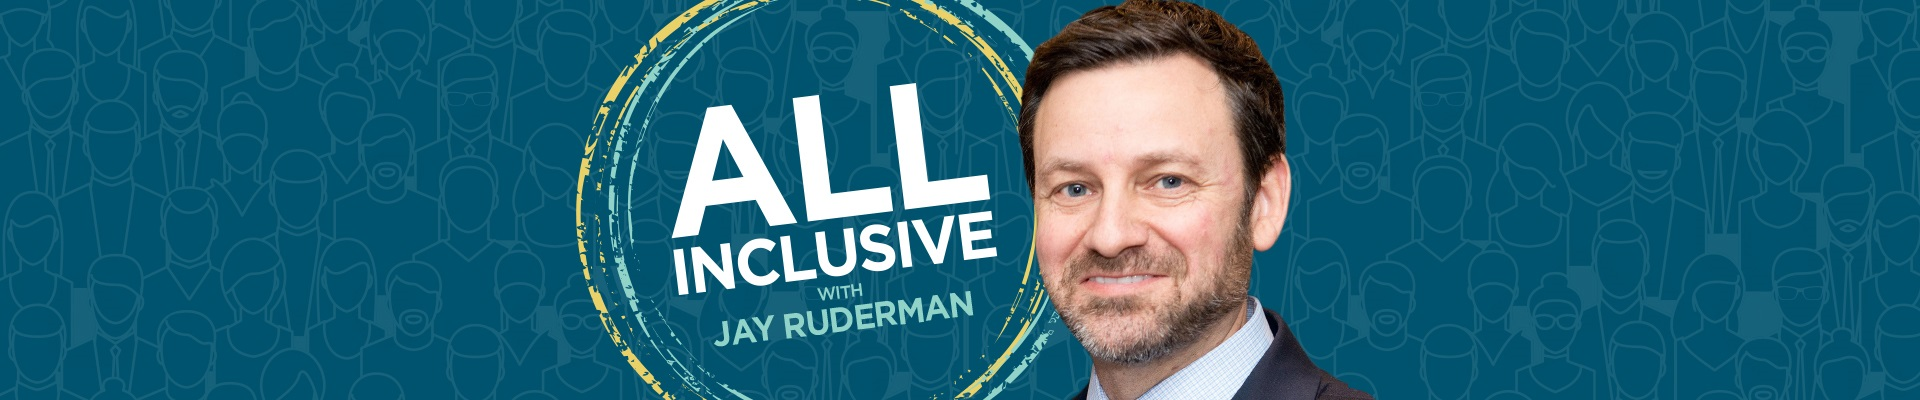 All Inclusive with Jay Ruderman – old